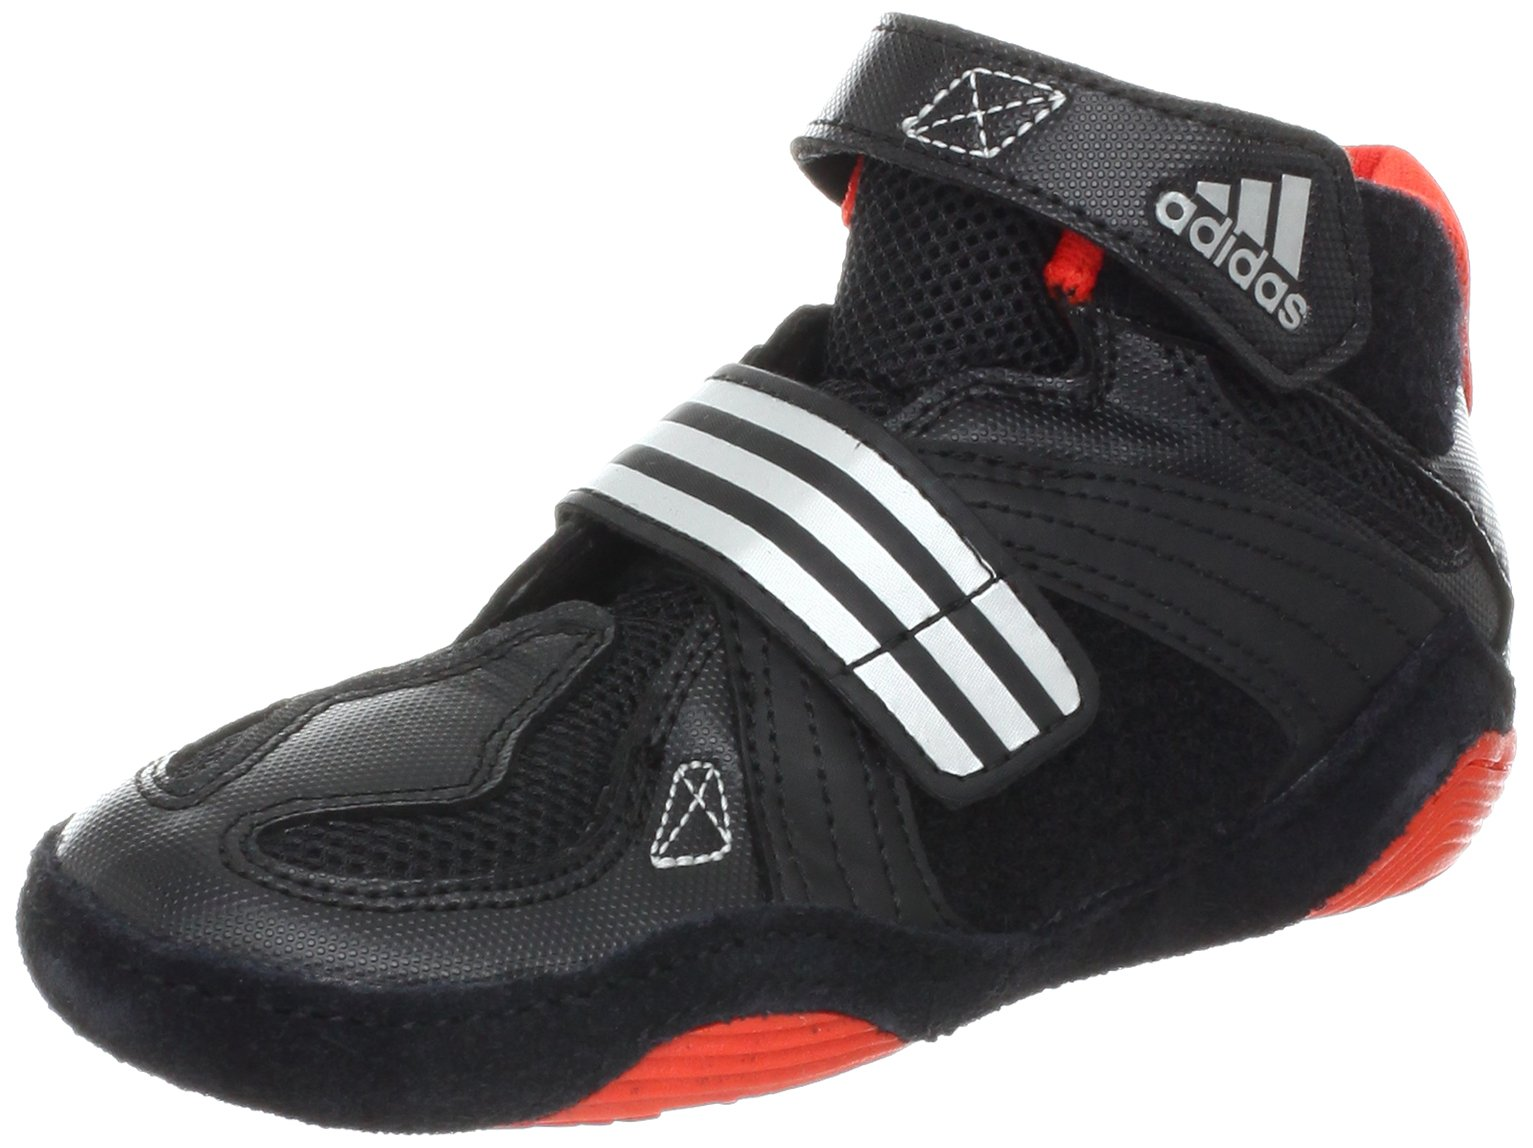 adidas Wrestling Extero II K Wrestling Shoe (Toddler/Little Kid/Bid Kid),Black/Core Energy/Metallic Silver,5.5 M US Big Kid by adidas